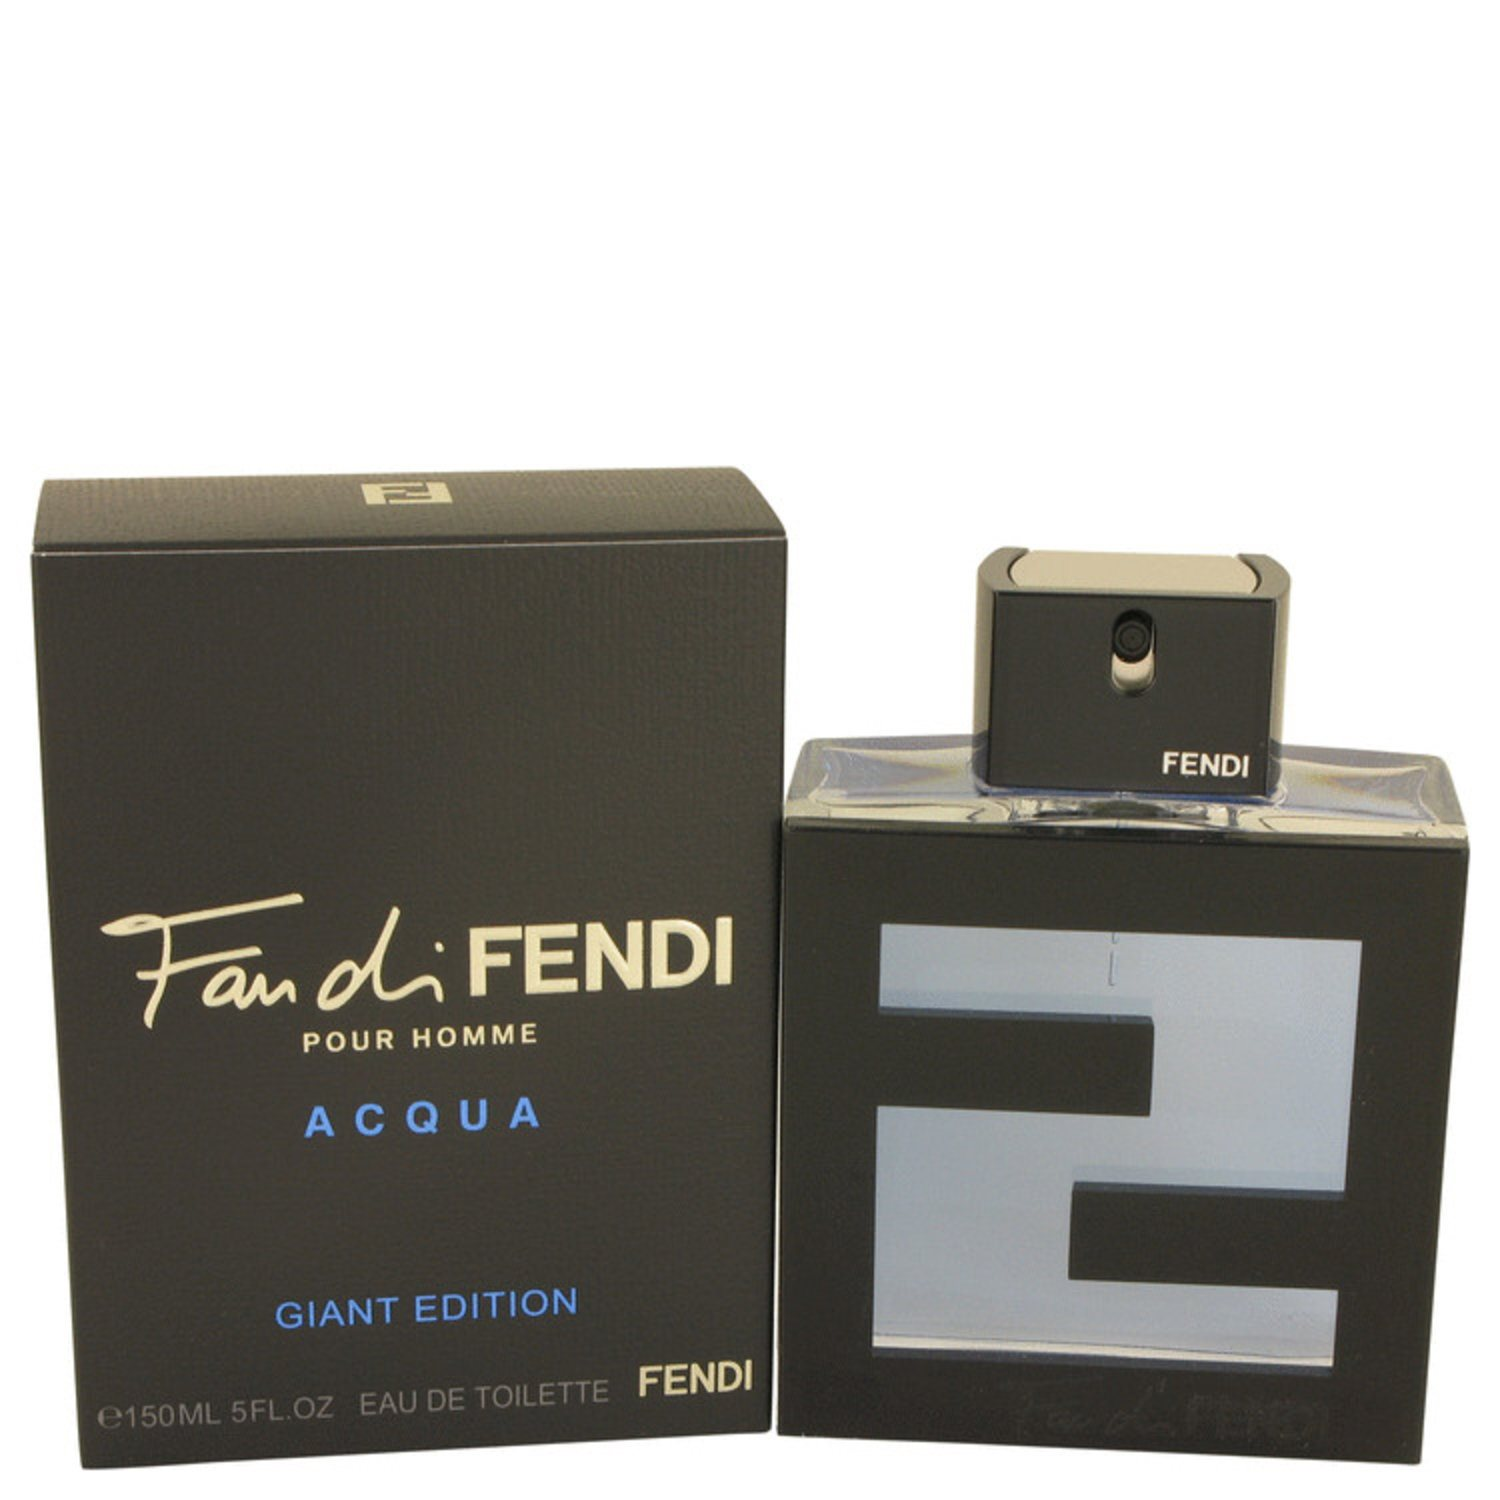 Fan Di Fendi Acqua Eau De Toilette Spray By Fendi 5 oz Eau D